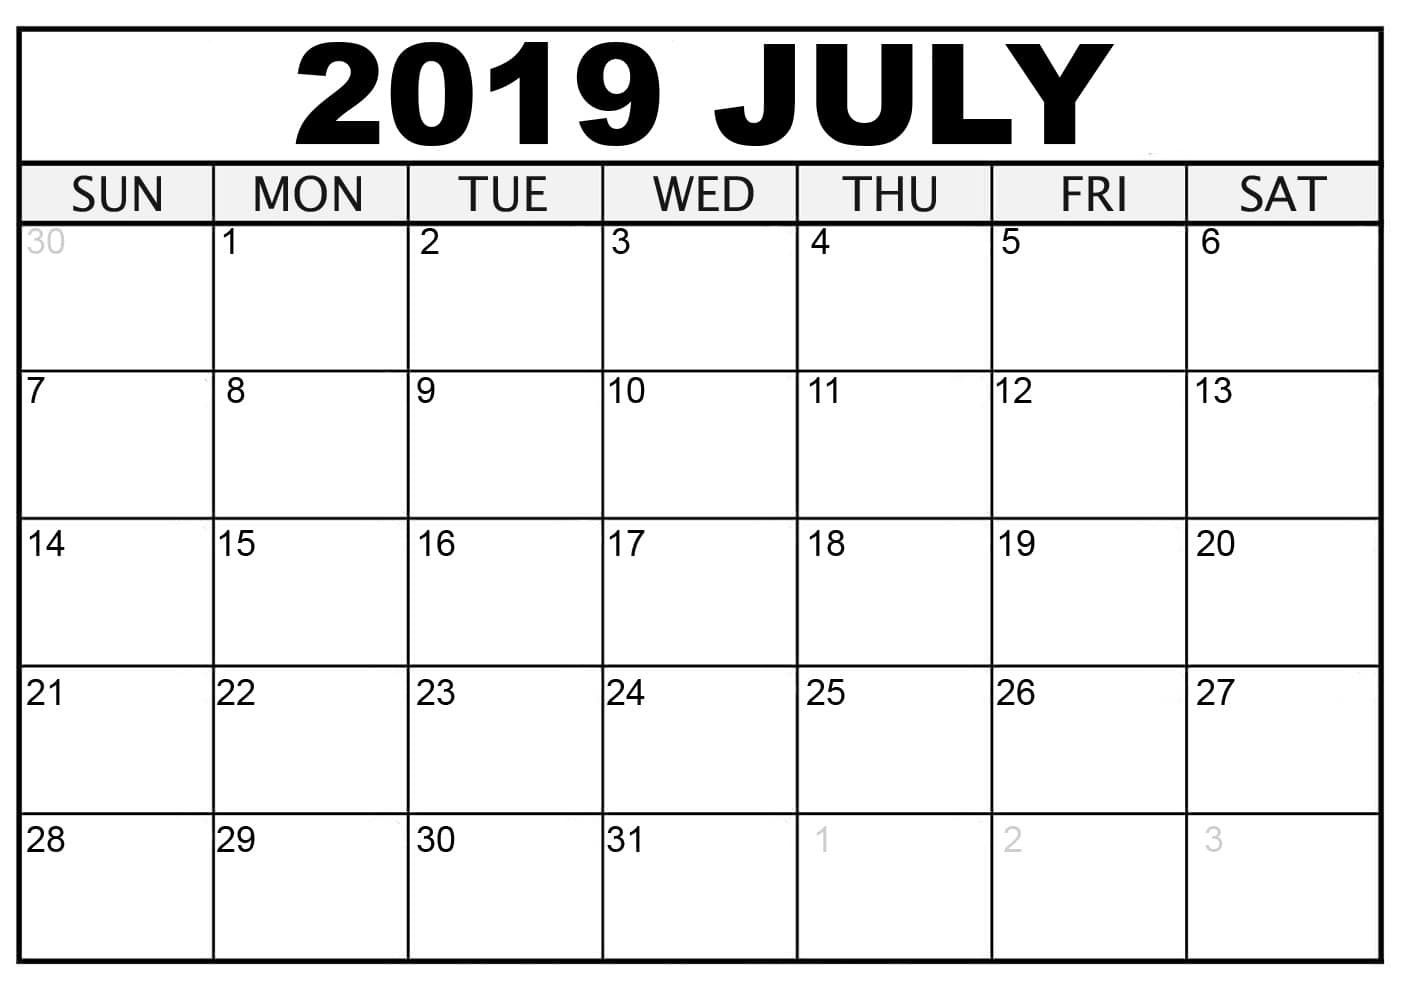 Calendrier Nfl 2020 2019.Blank July 2019 Calendar Free Download In 2019 Printable